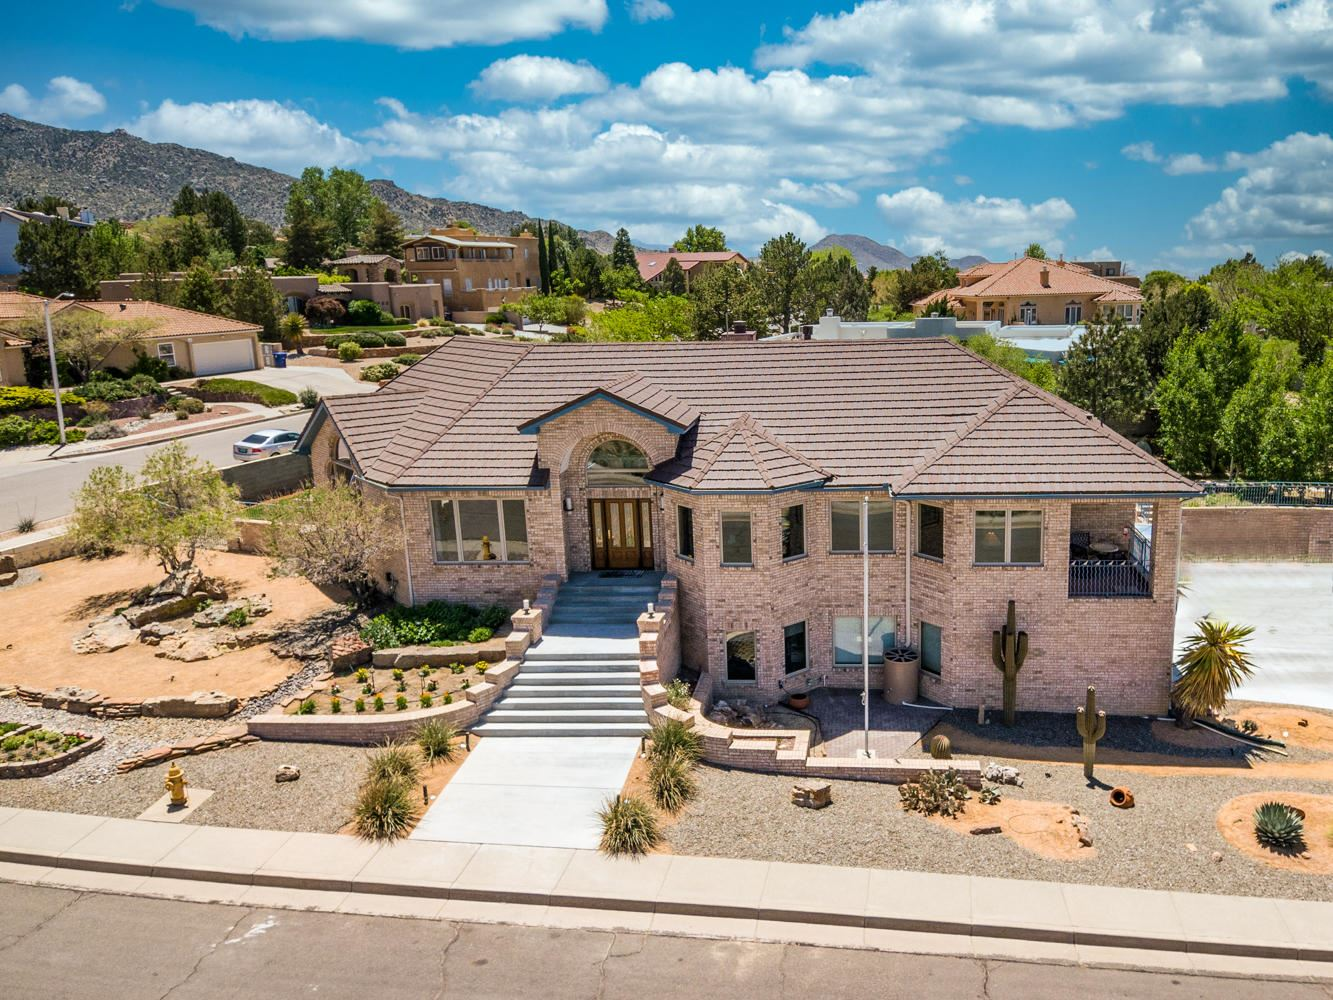 Photo of 13508 REBONITO Road NE, Albuquerque, NM 87112 (MLS # 967652)